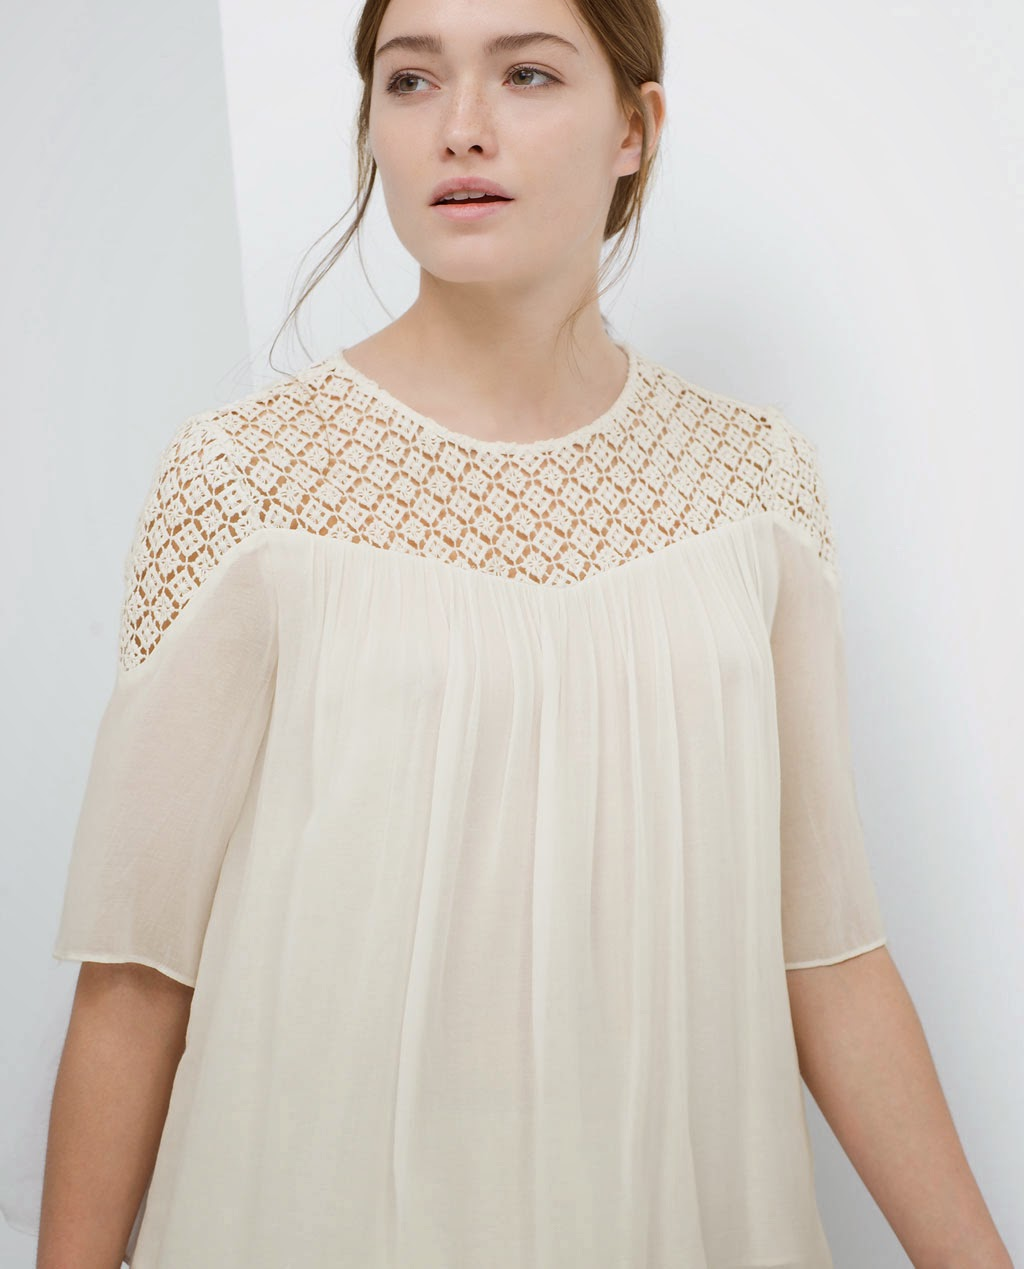 Zara Blouse With Transparent Details 106